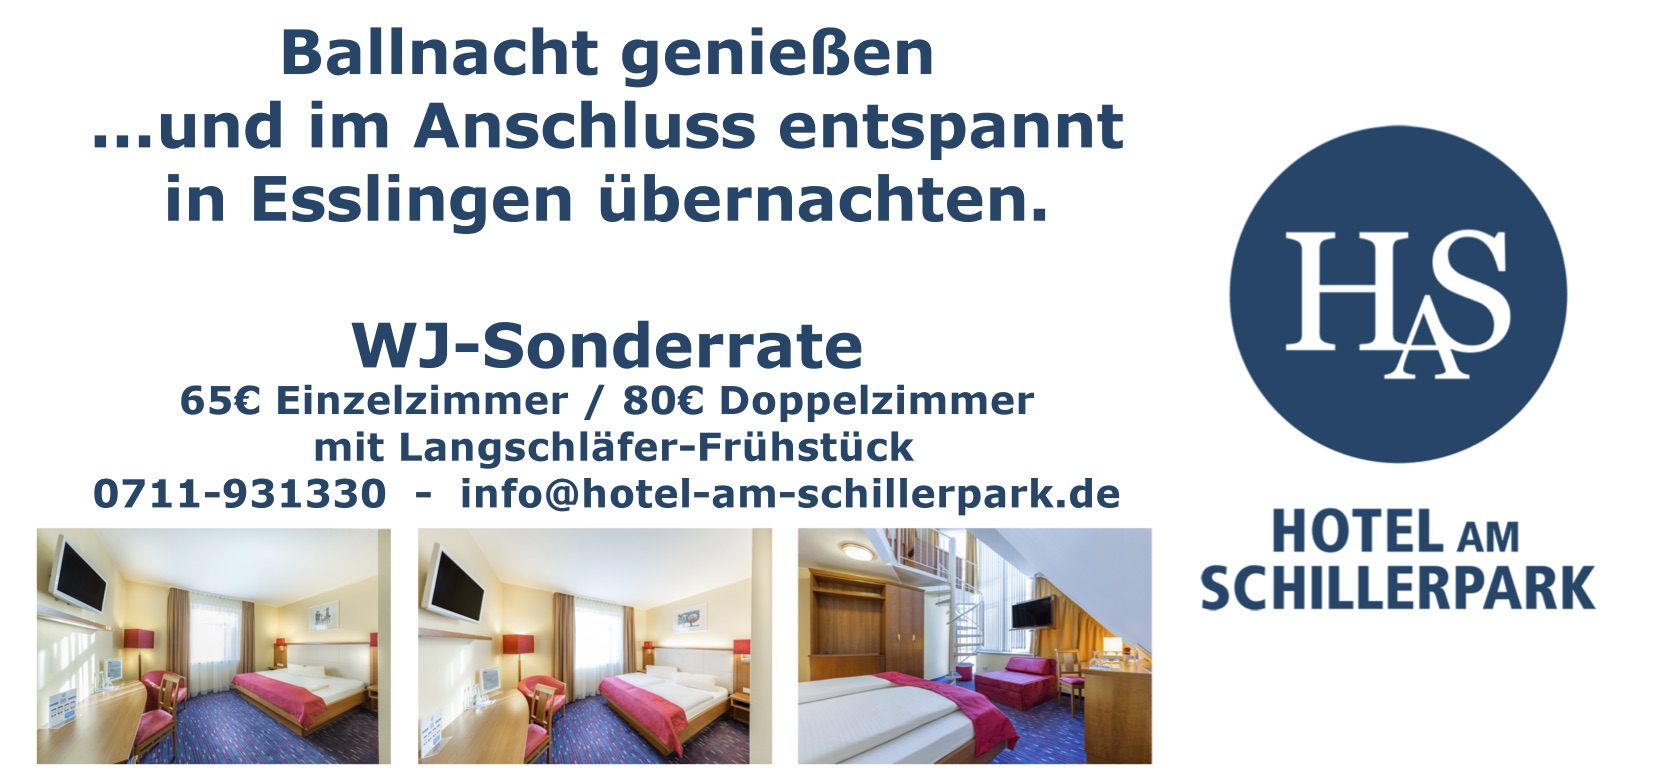 Ballangebot Hotel am Schillerpark